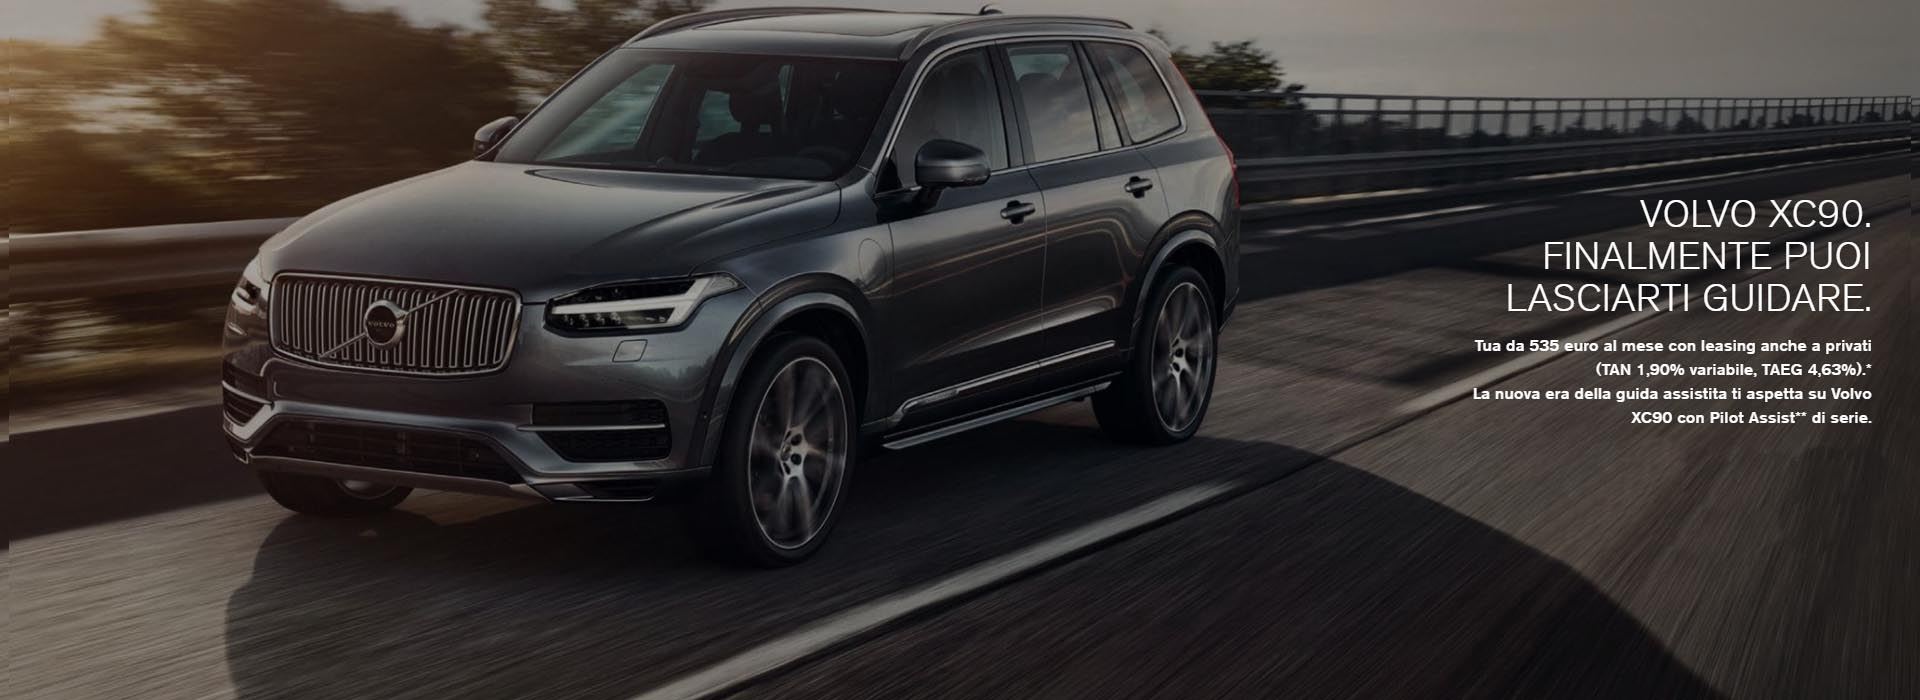 listings down volvo mo awd momentum leasing year make available car lease